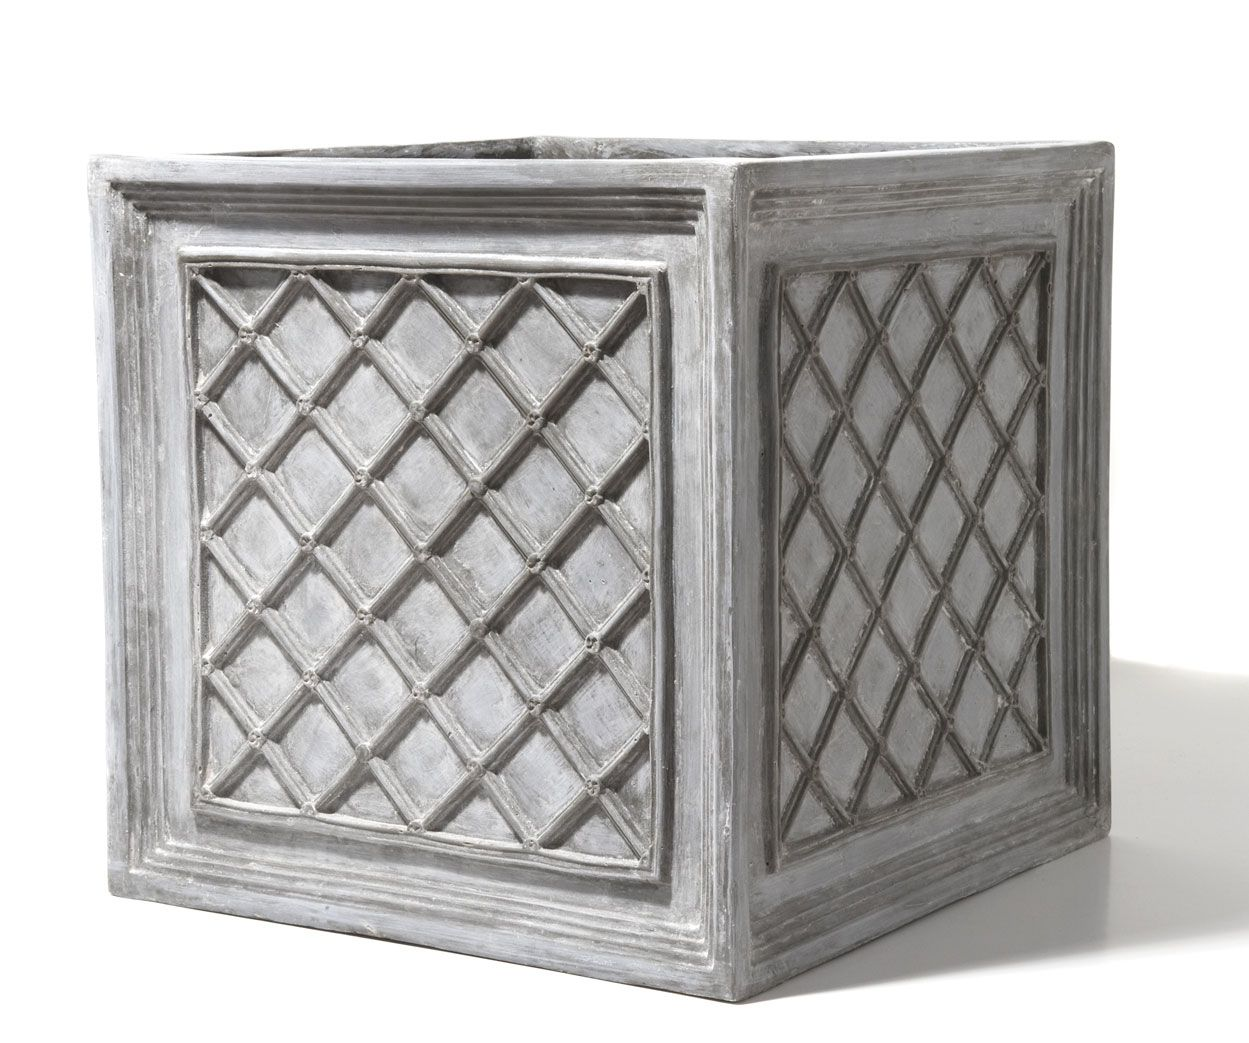 THE ICONIC STYLE OF THESE ORNATE IRON GRID PLANTERS REPRESENTS A FORM THAT DATES BACK TO THE TURN OF THE CENTURY. THE ORIGINALS, WHICH WERE ...